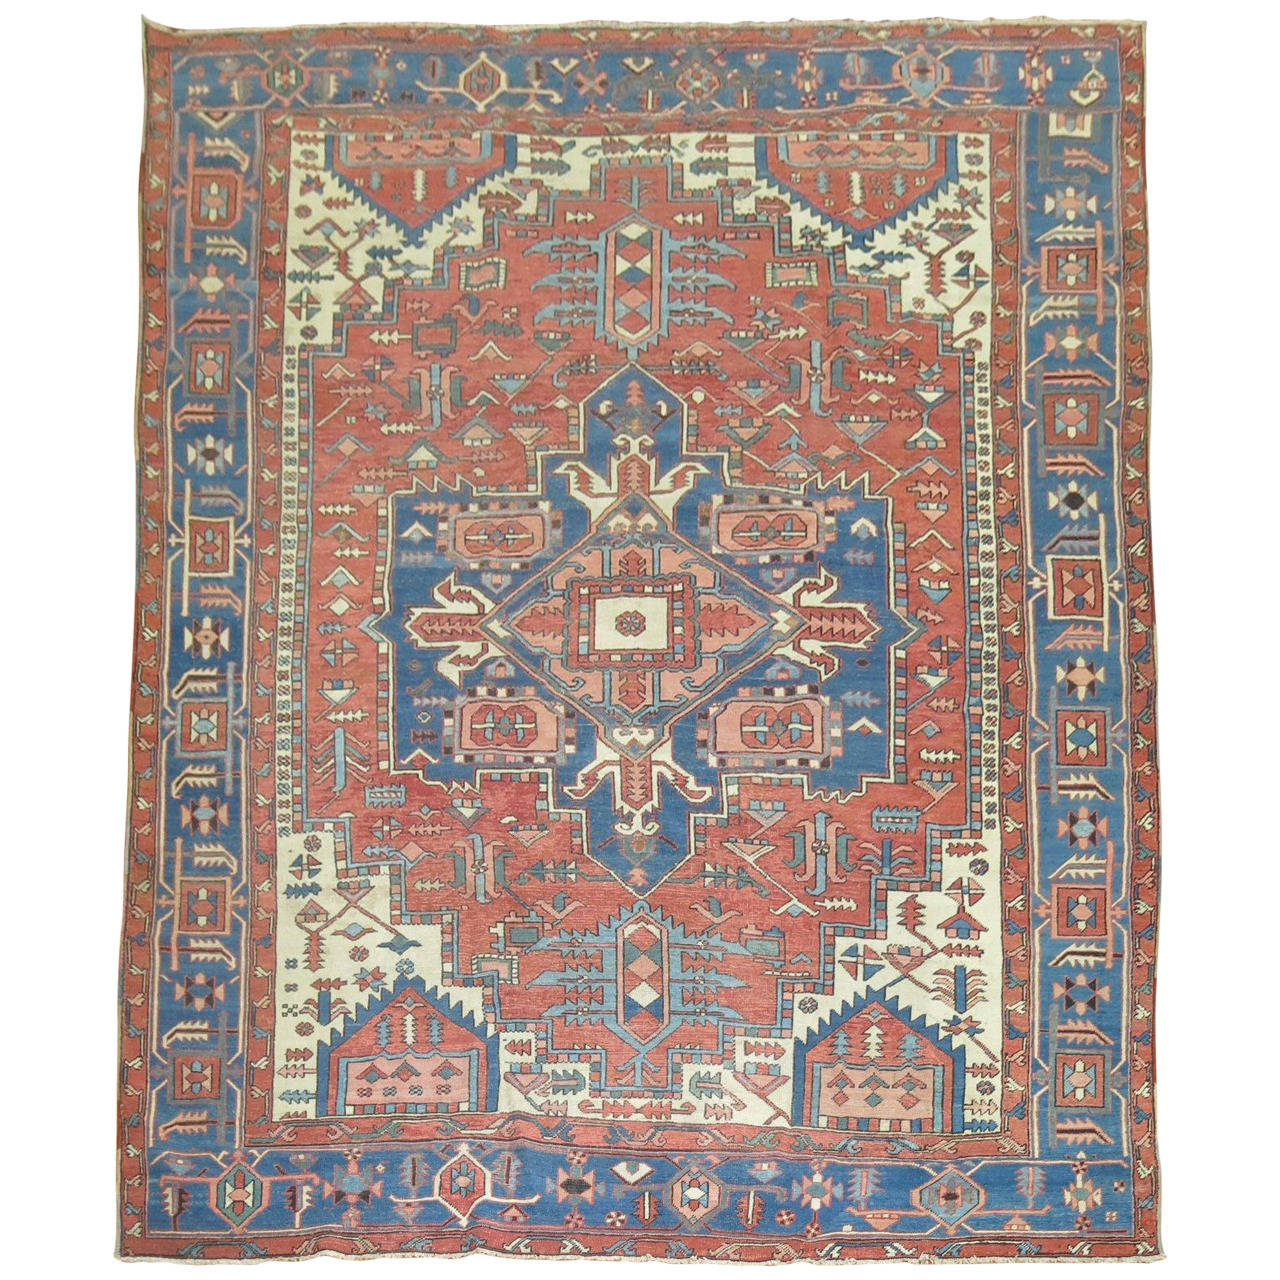 Persian Rugs For Sale: Antique Persian Serapi Rug For Sale At 1stdibs